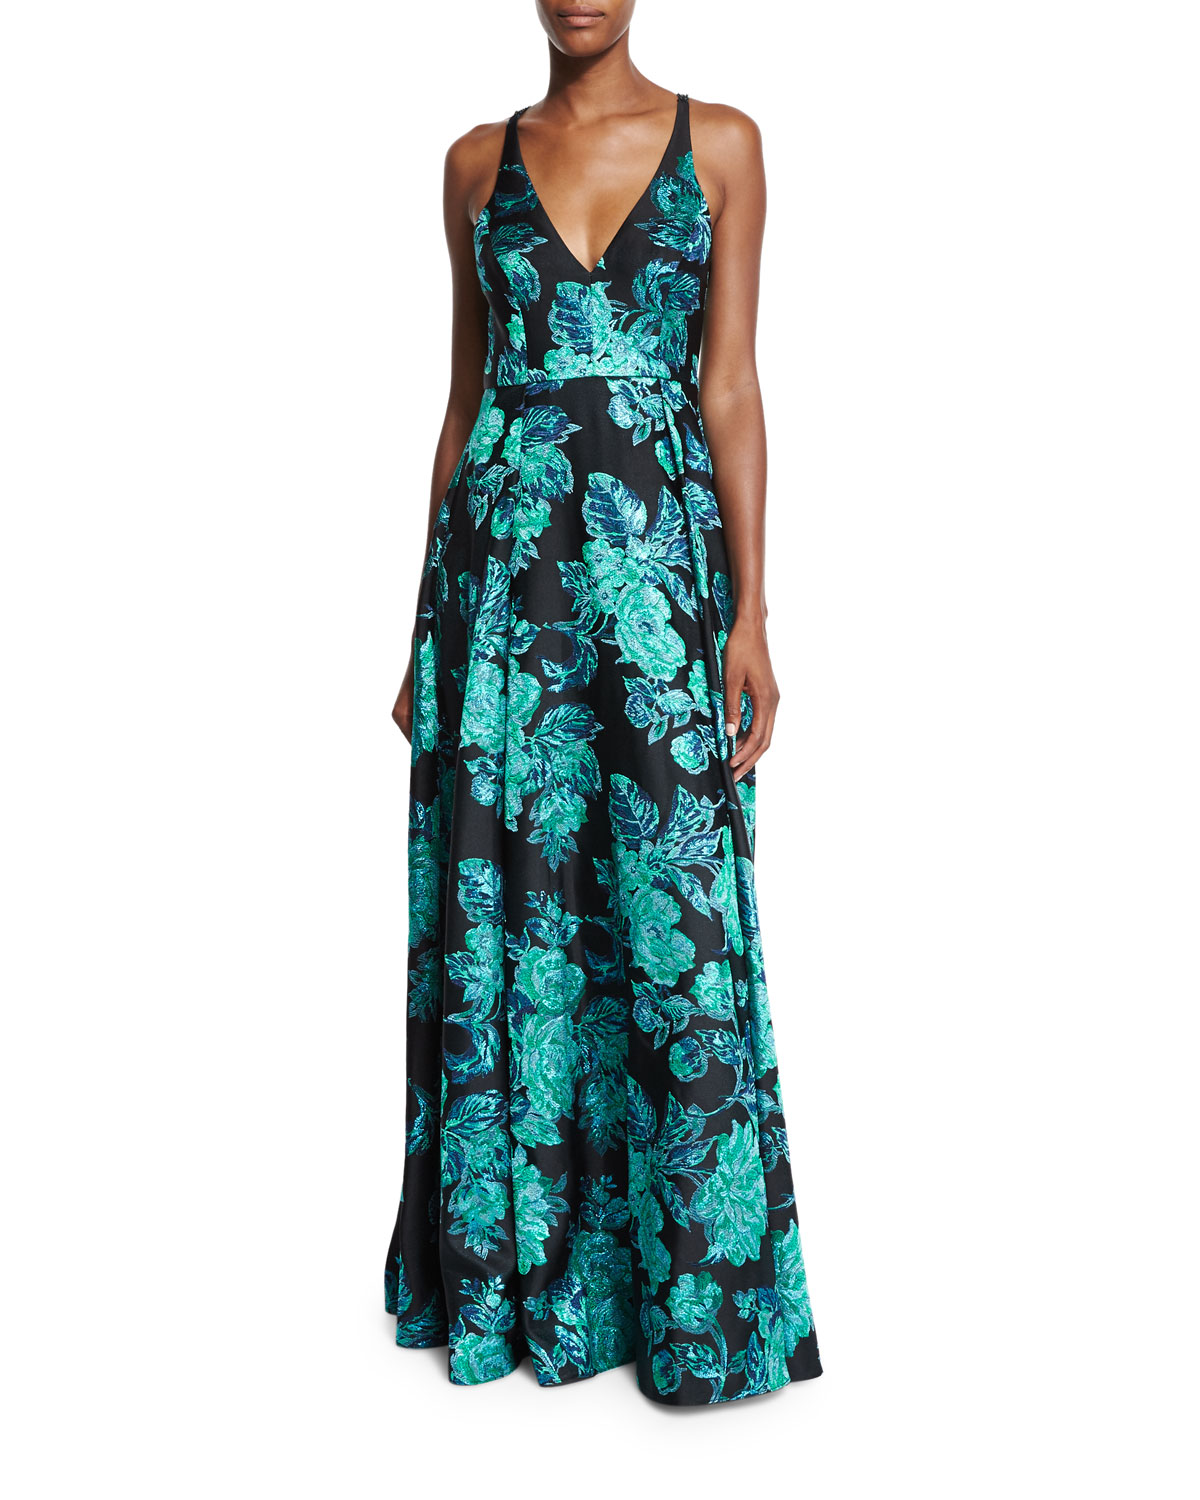 Sleeveless V-Neck Beaded Floral Gown, Black/Green